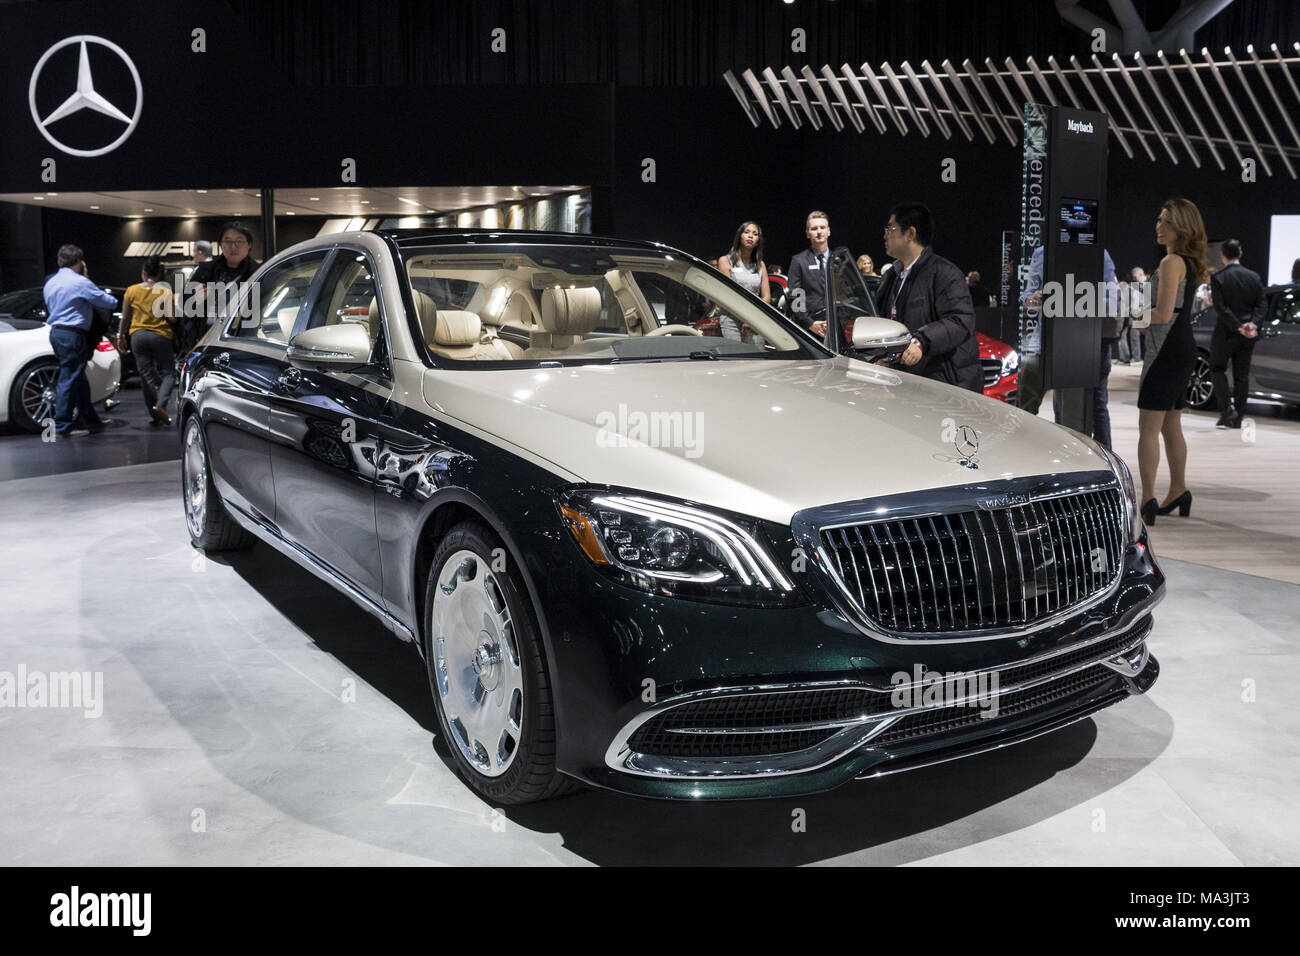 New york ny usa 28th mar 2018 the maybach s650 by for Mercedes benz new york ny